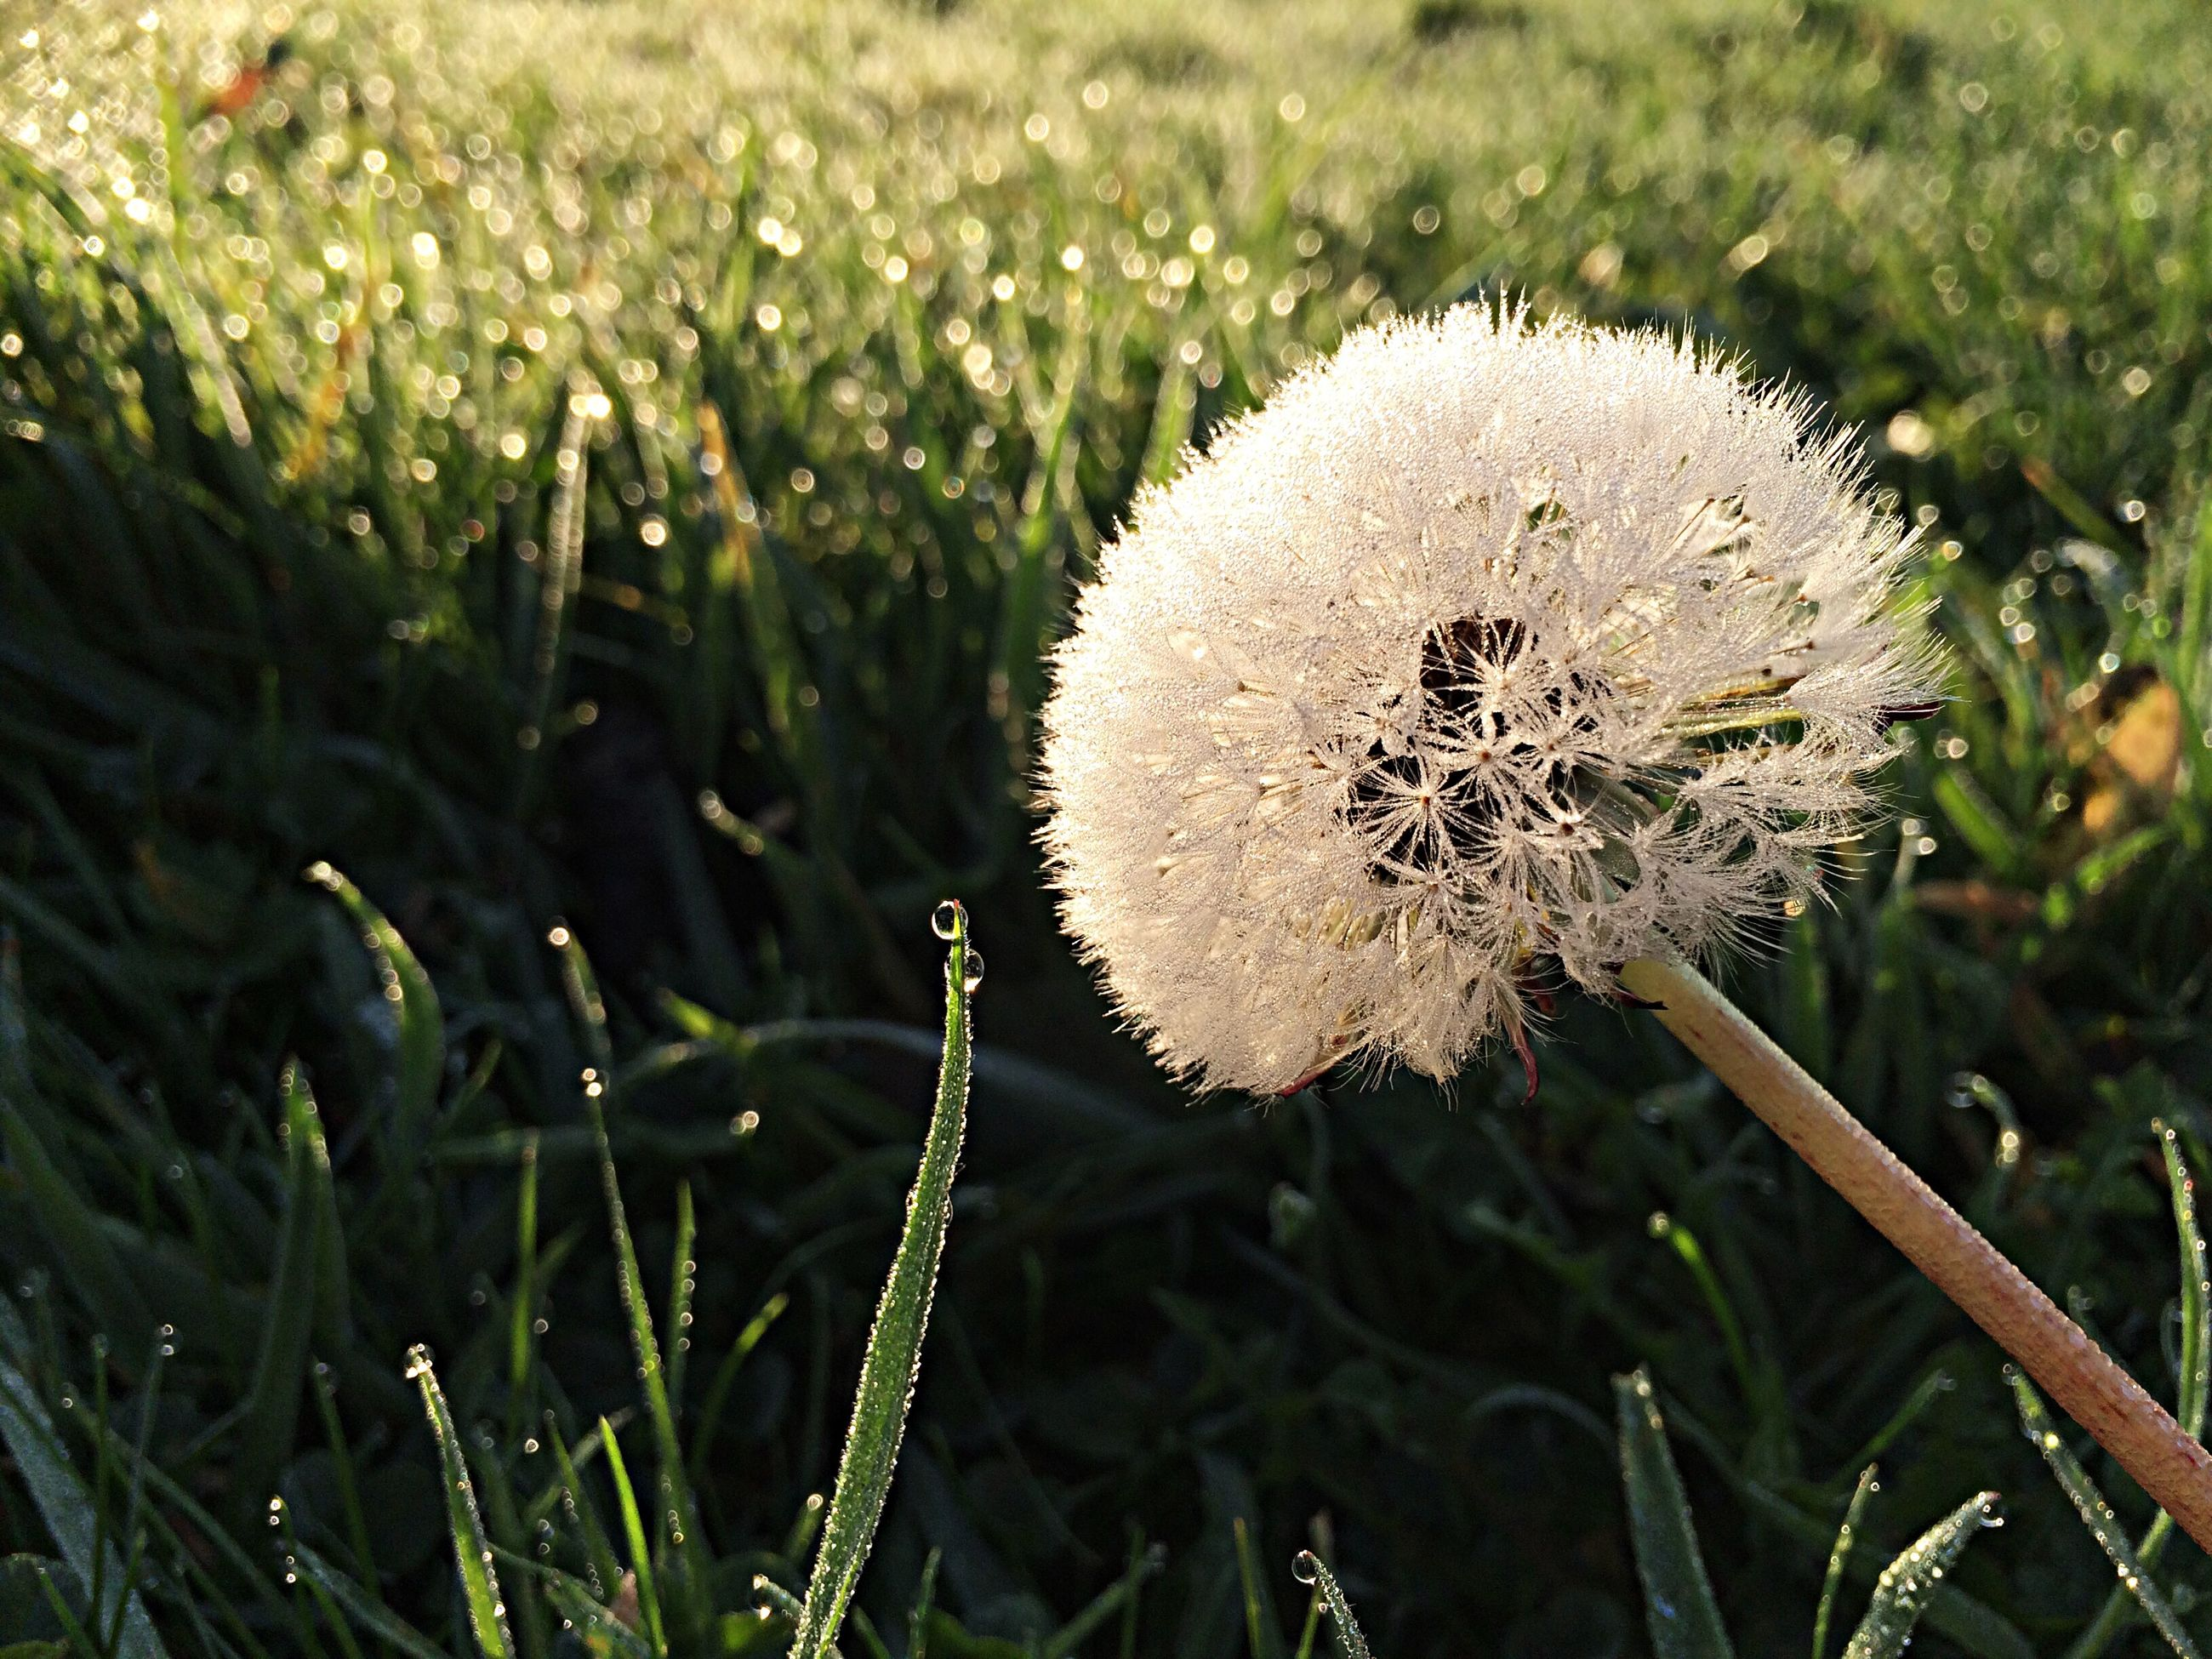 grass, growth, field, mushroom, close-up, white color, nature, dandelion, fragility, freshness, beauty in nature, focus on foreground, plant, fungus, toadstool, flower, uncultivated, day, selective focus, outdoors